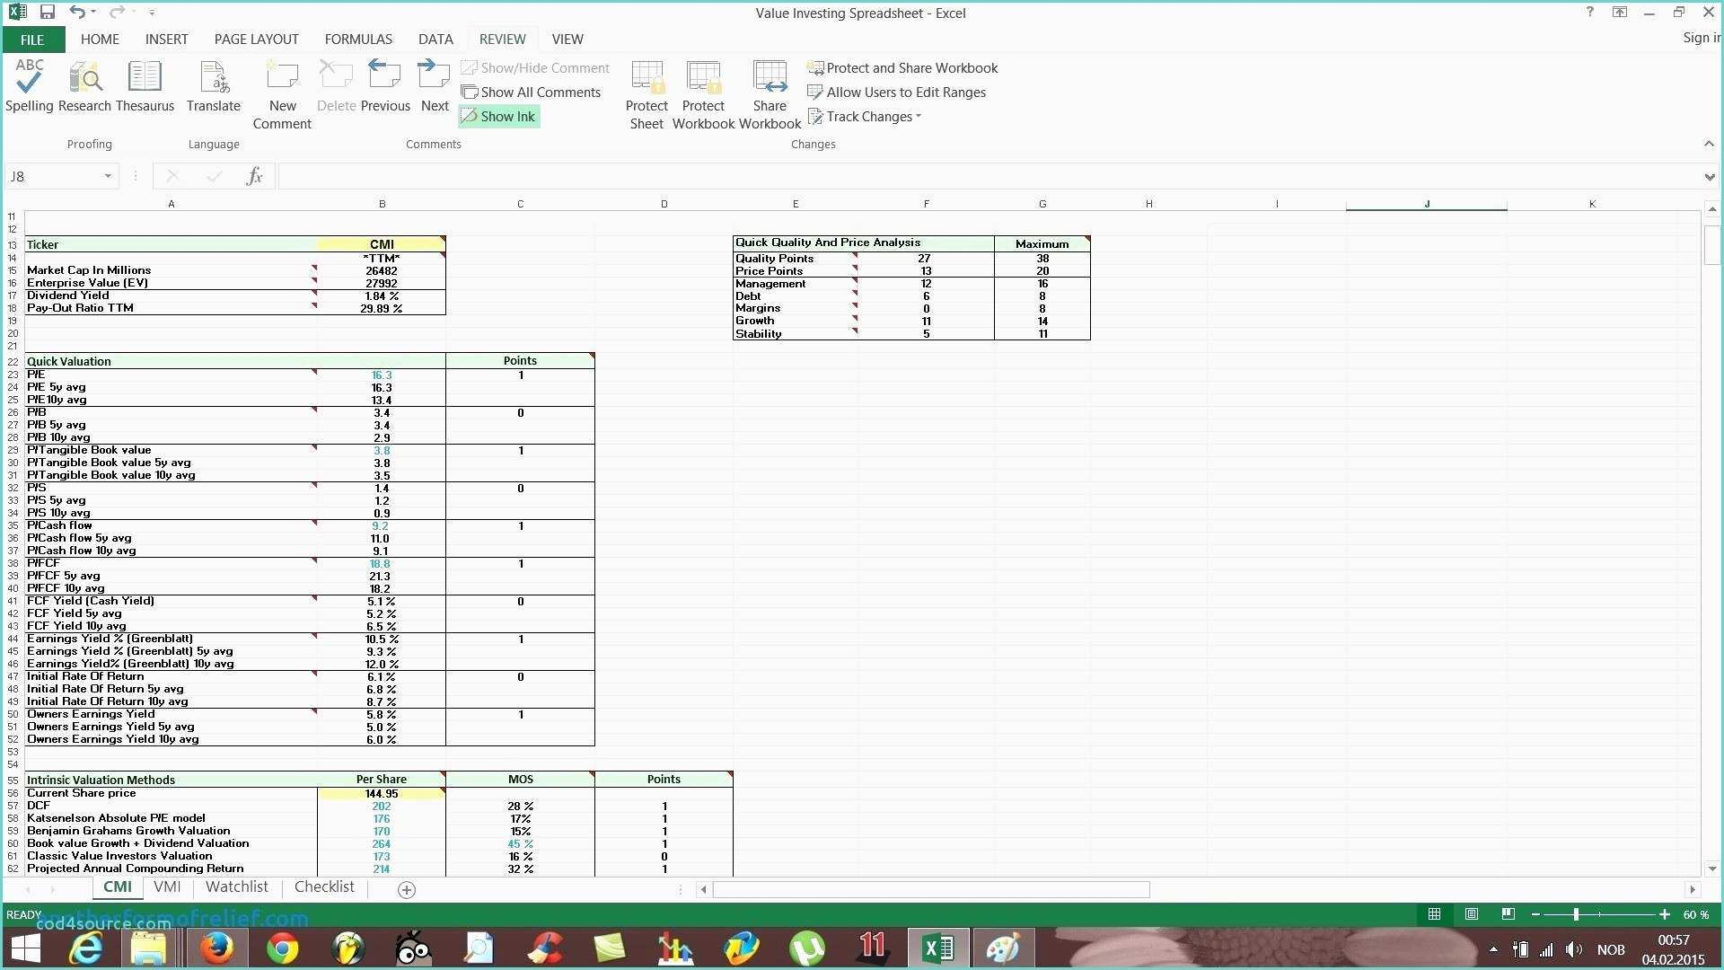 stock analysis spreadsheet excel template in valuation